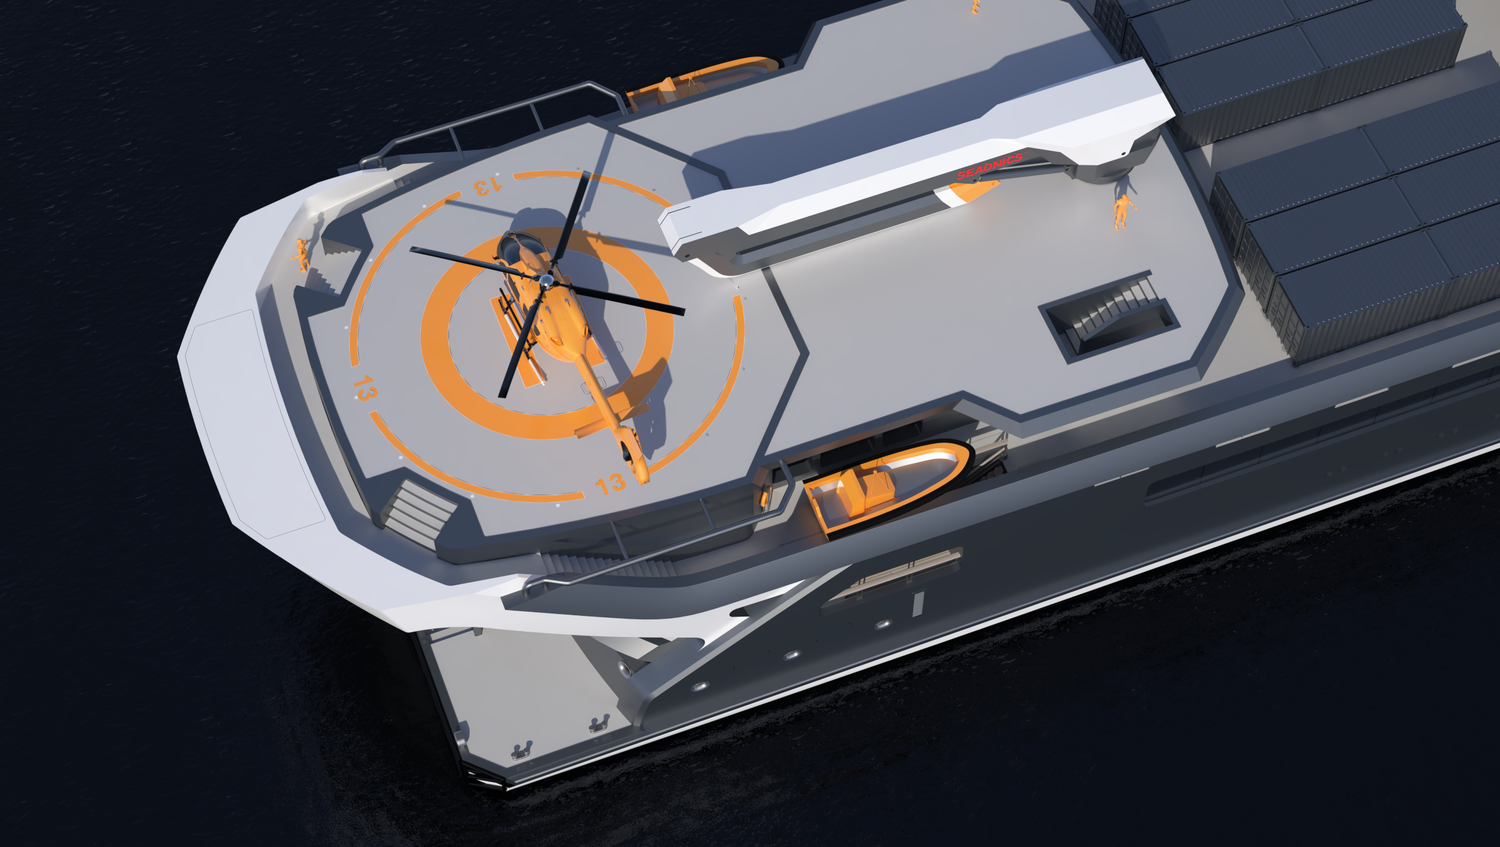 1621-updates_HELIPAD_AFT-ENV02-OFF0_denoised.png